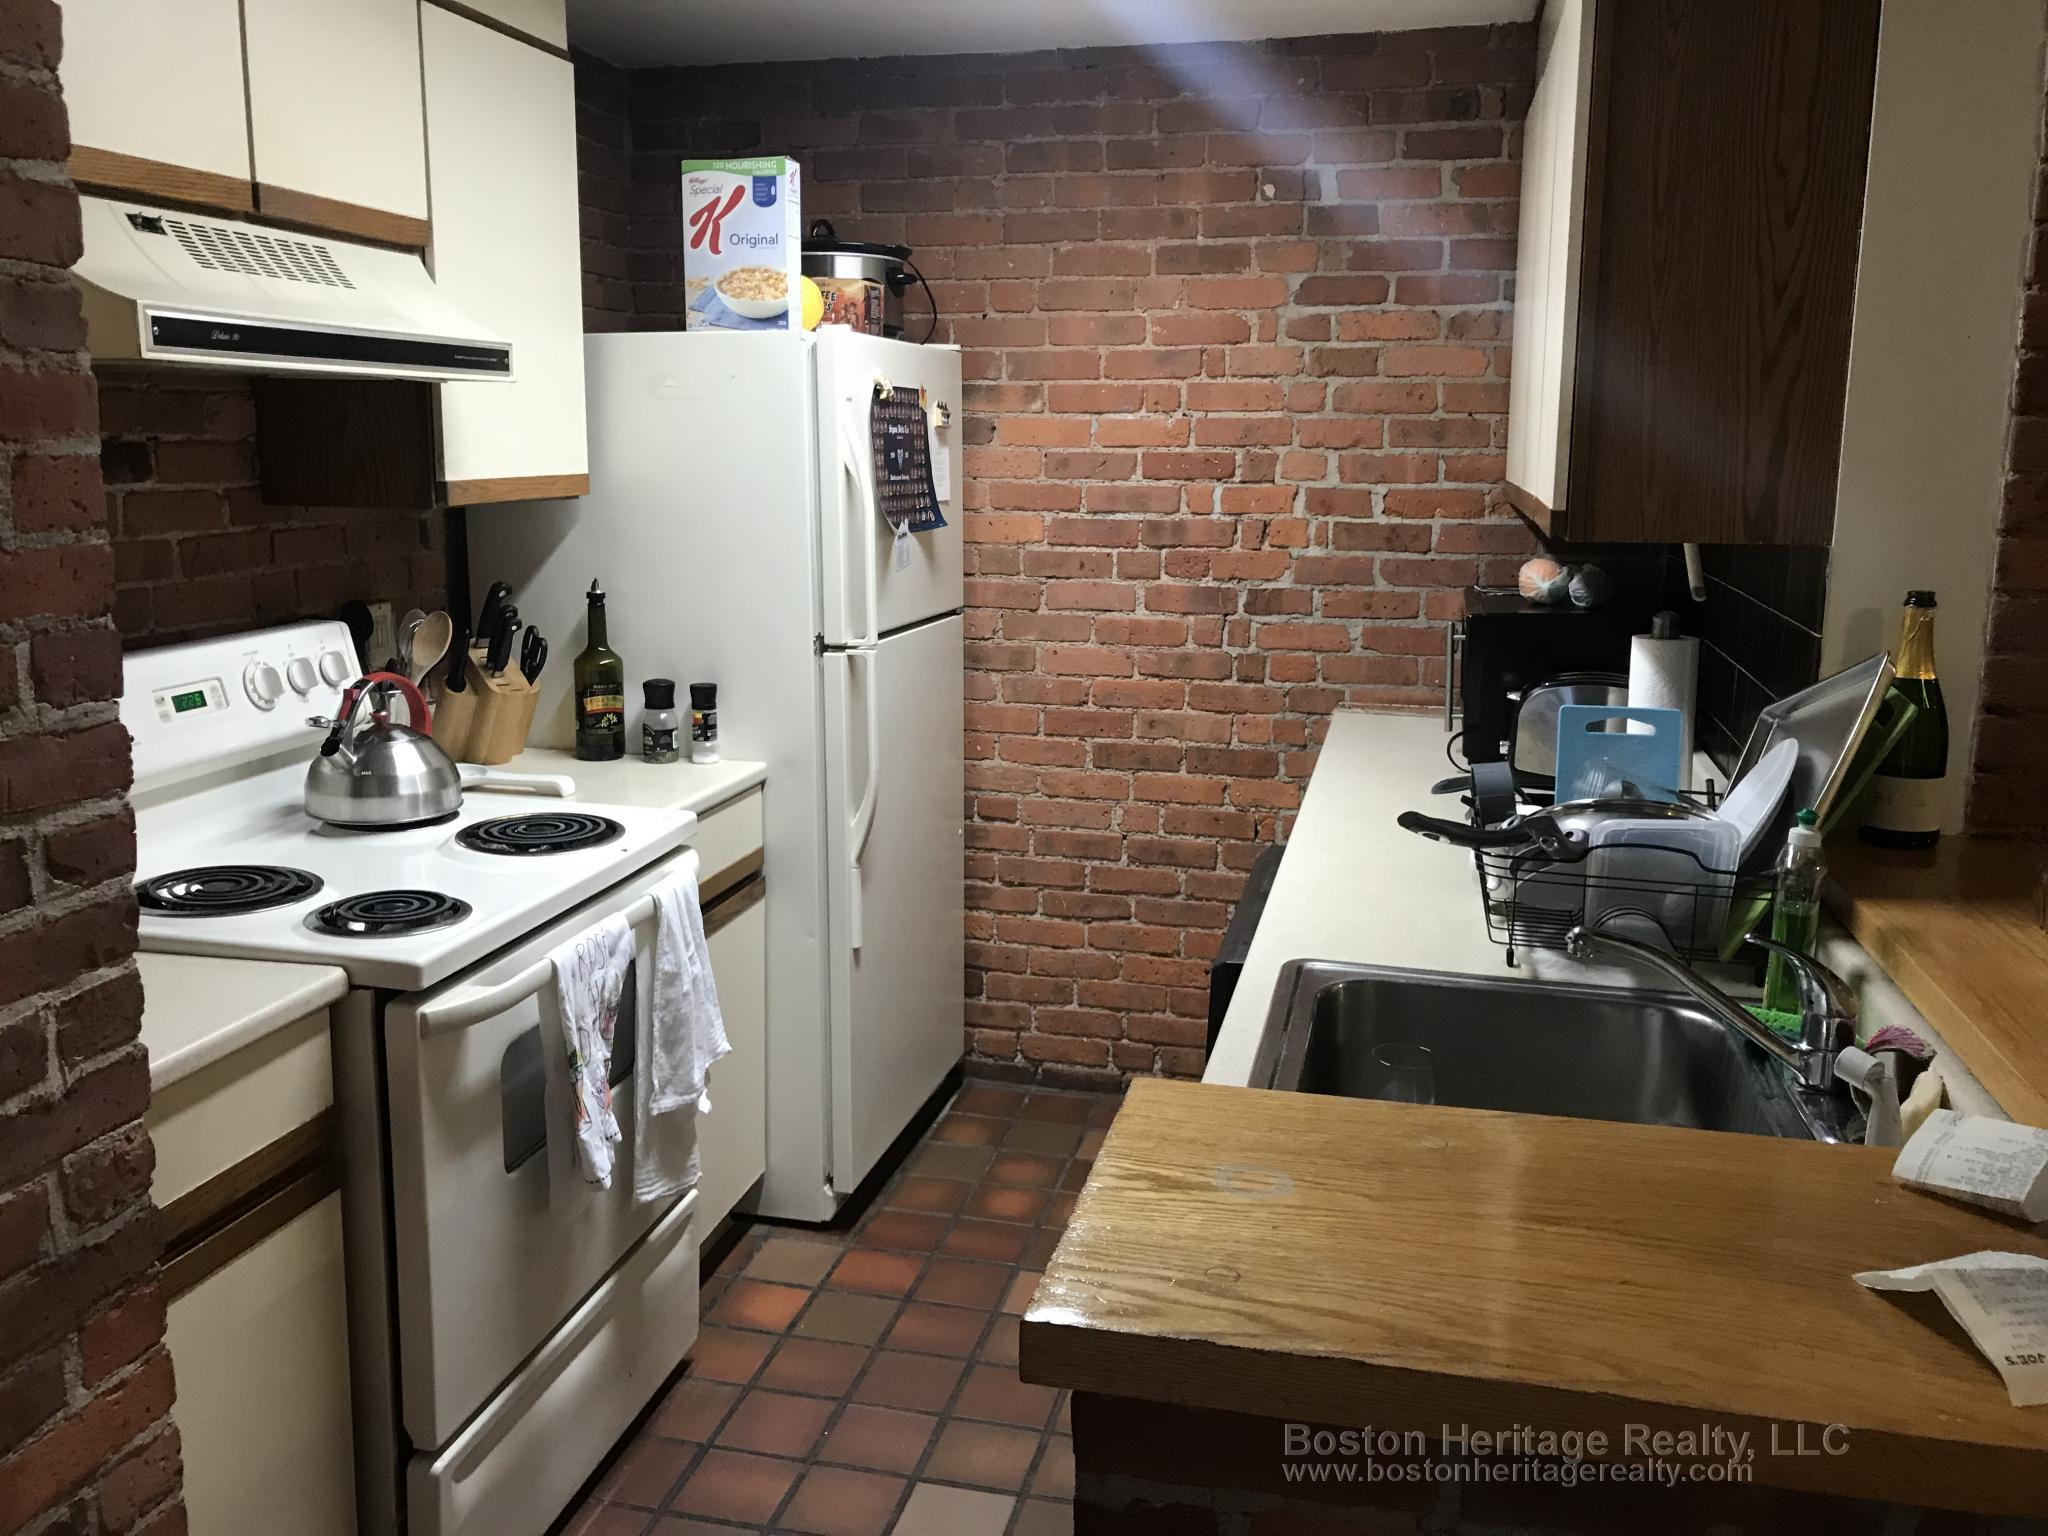 2 Beds, 1 Bath apartment in Boston, Fenway for $2,950